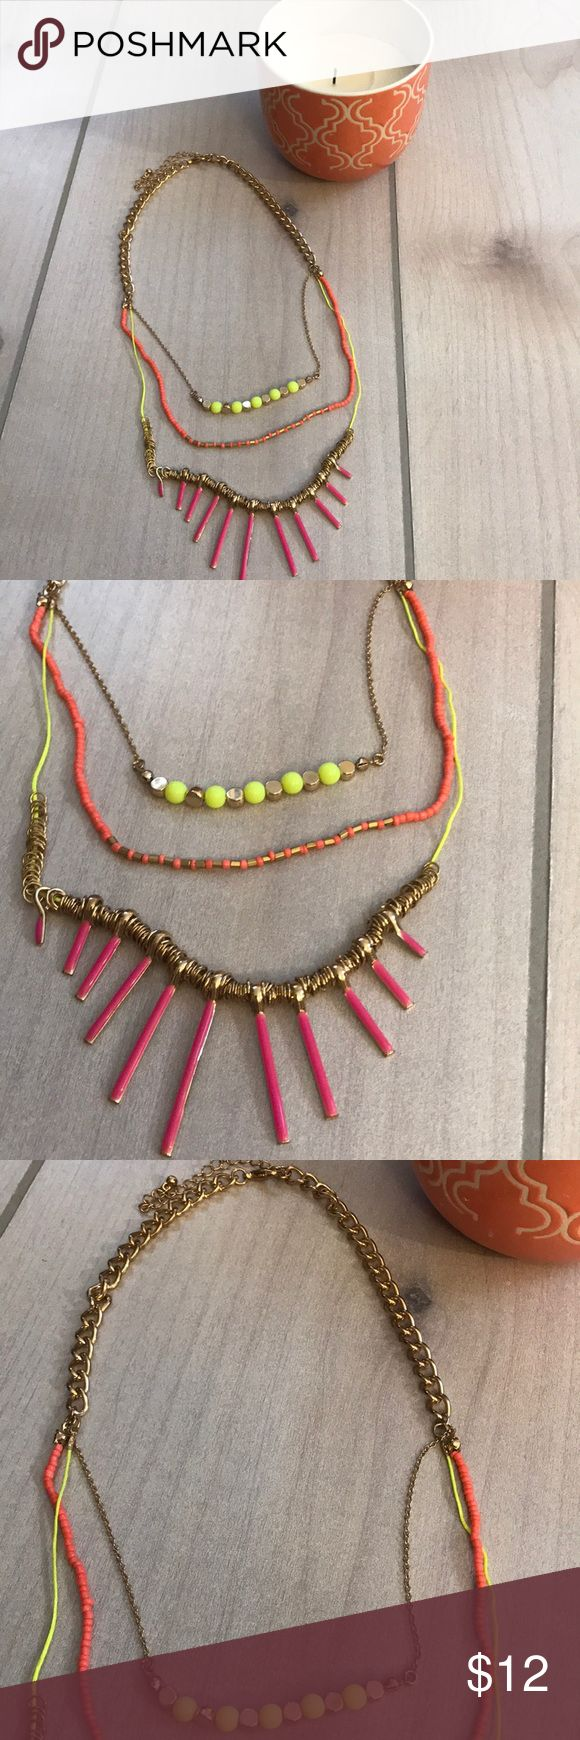 Colorful gold statement necklace 3 pieces connected by a thick gold chain neon yellow and gold beads peach and gold beads and gold with long neon pink  Super cute to be paired with just about anything Jewelry Necklaces